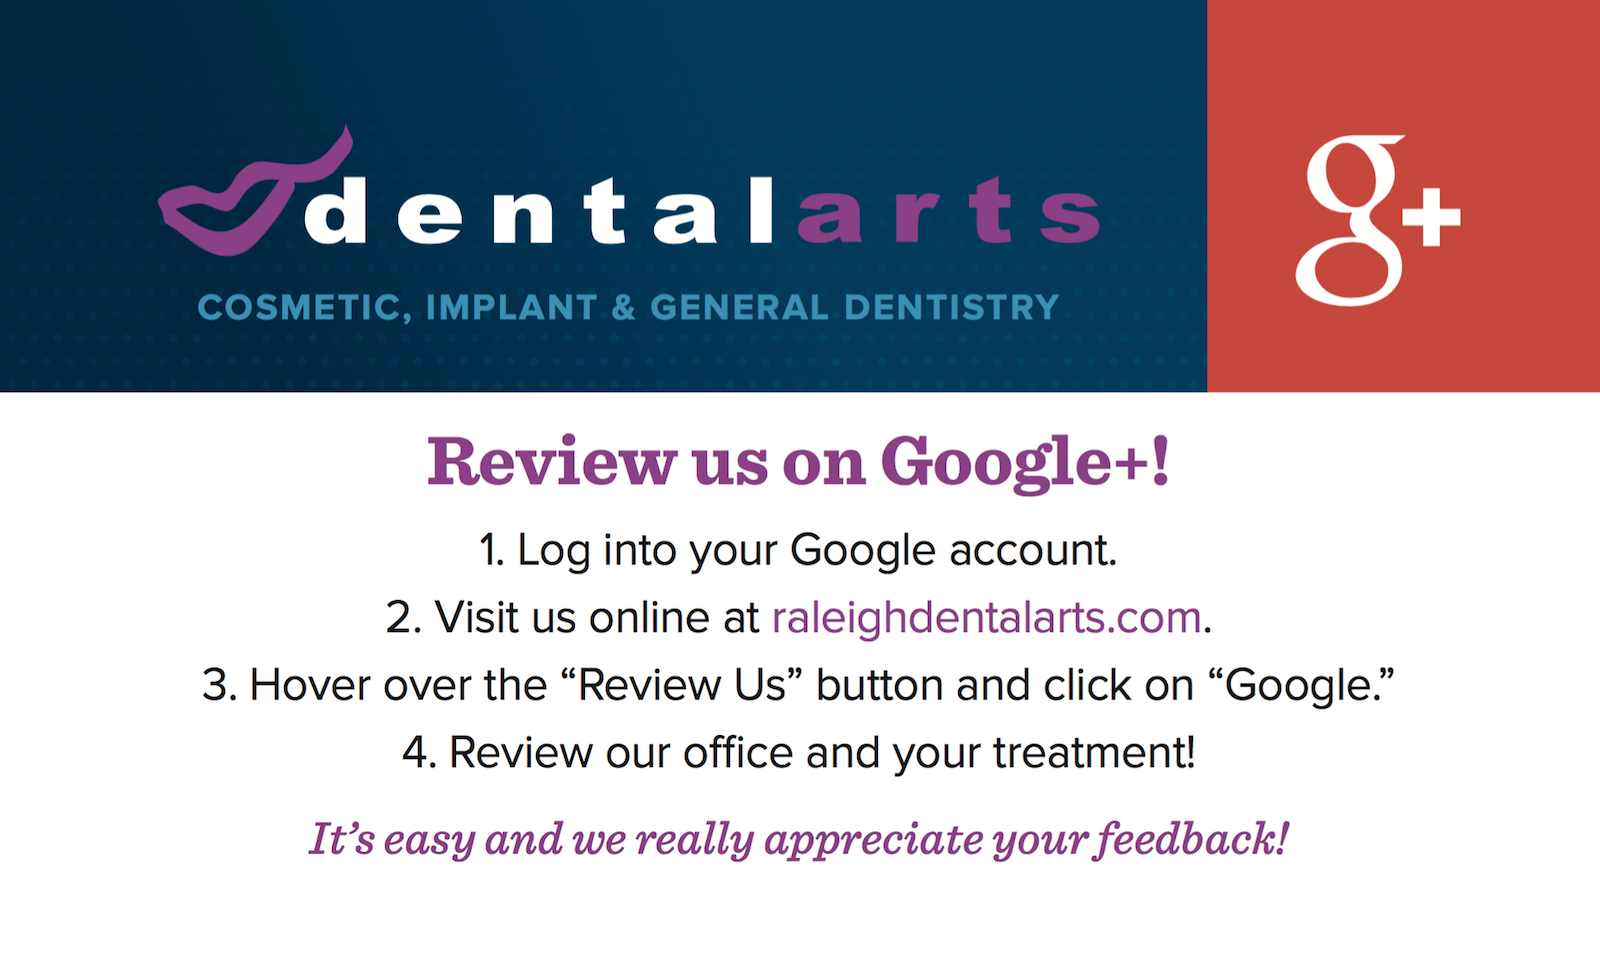 DentalArts-Google-Review-Card